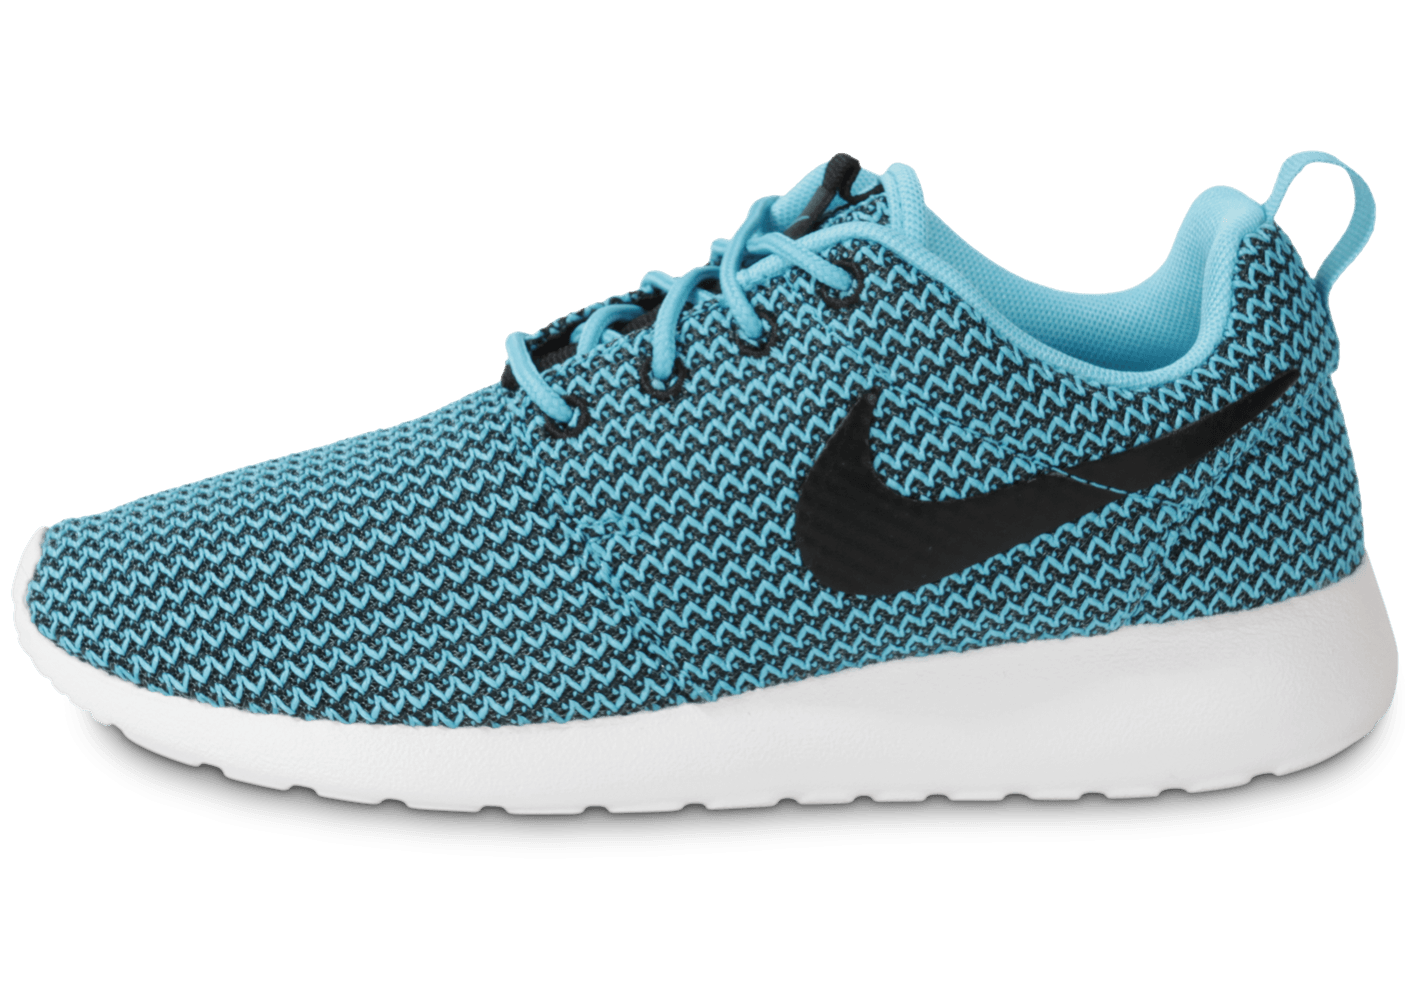 newest 0710d b6249 Nike Roshe Run Clear Water - Chaussures Chaussures - Chausport